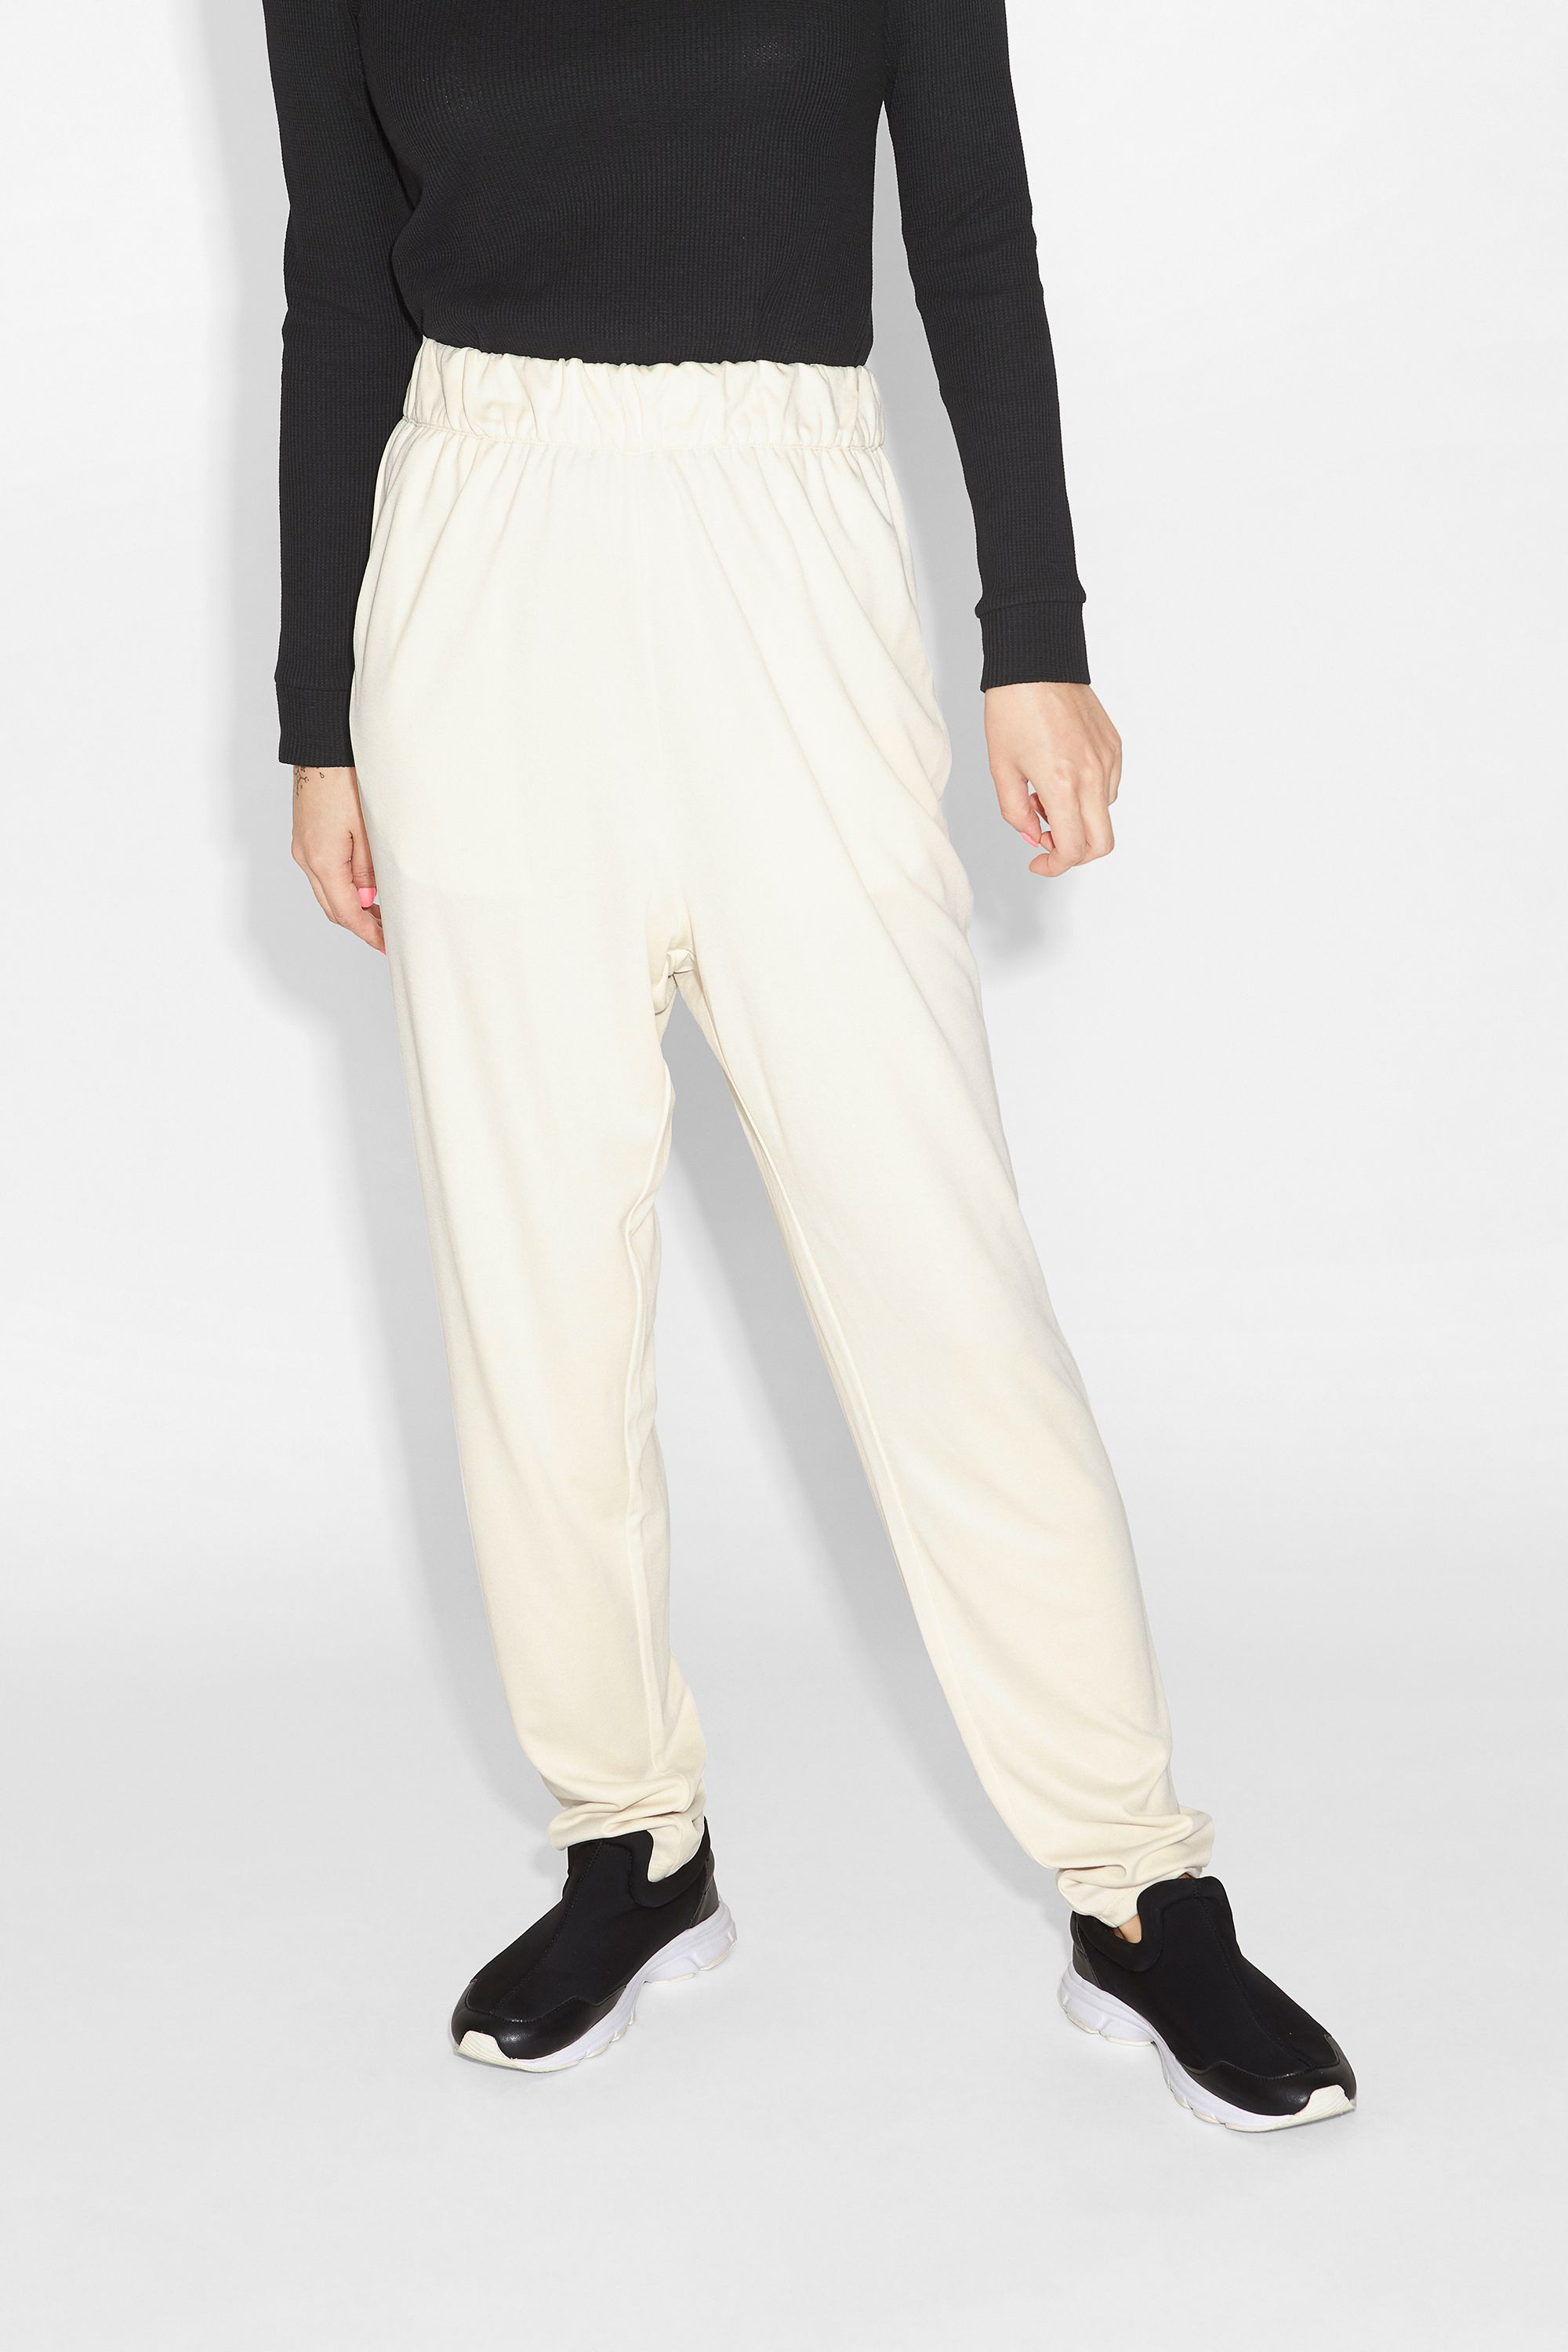 Monki | Trousers | Rita trousers